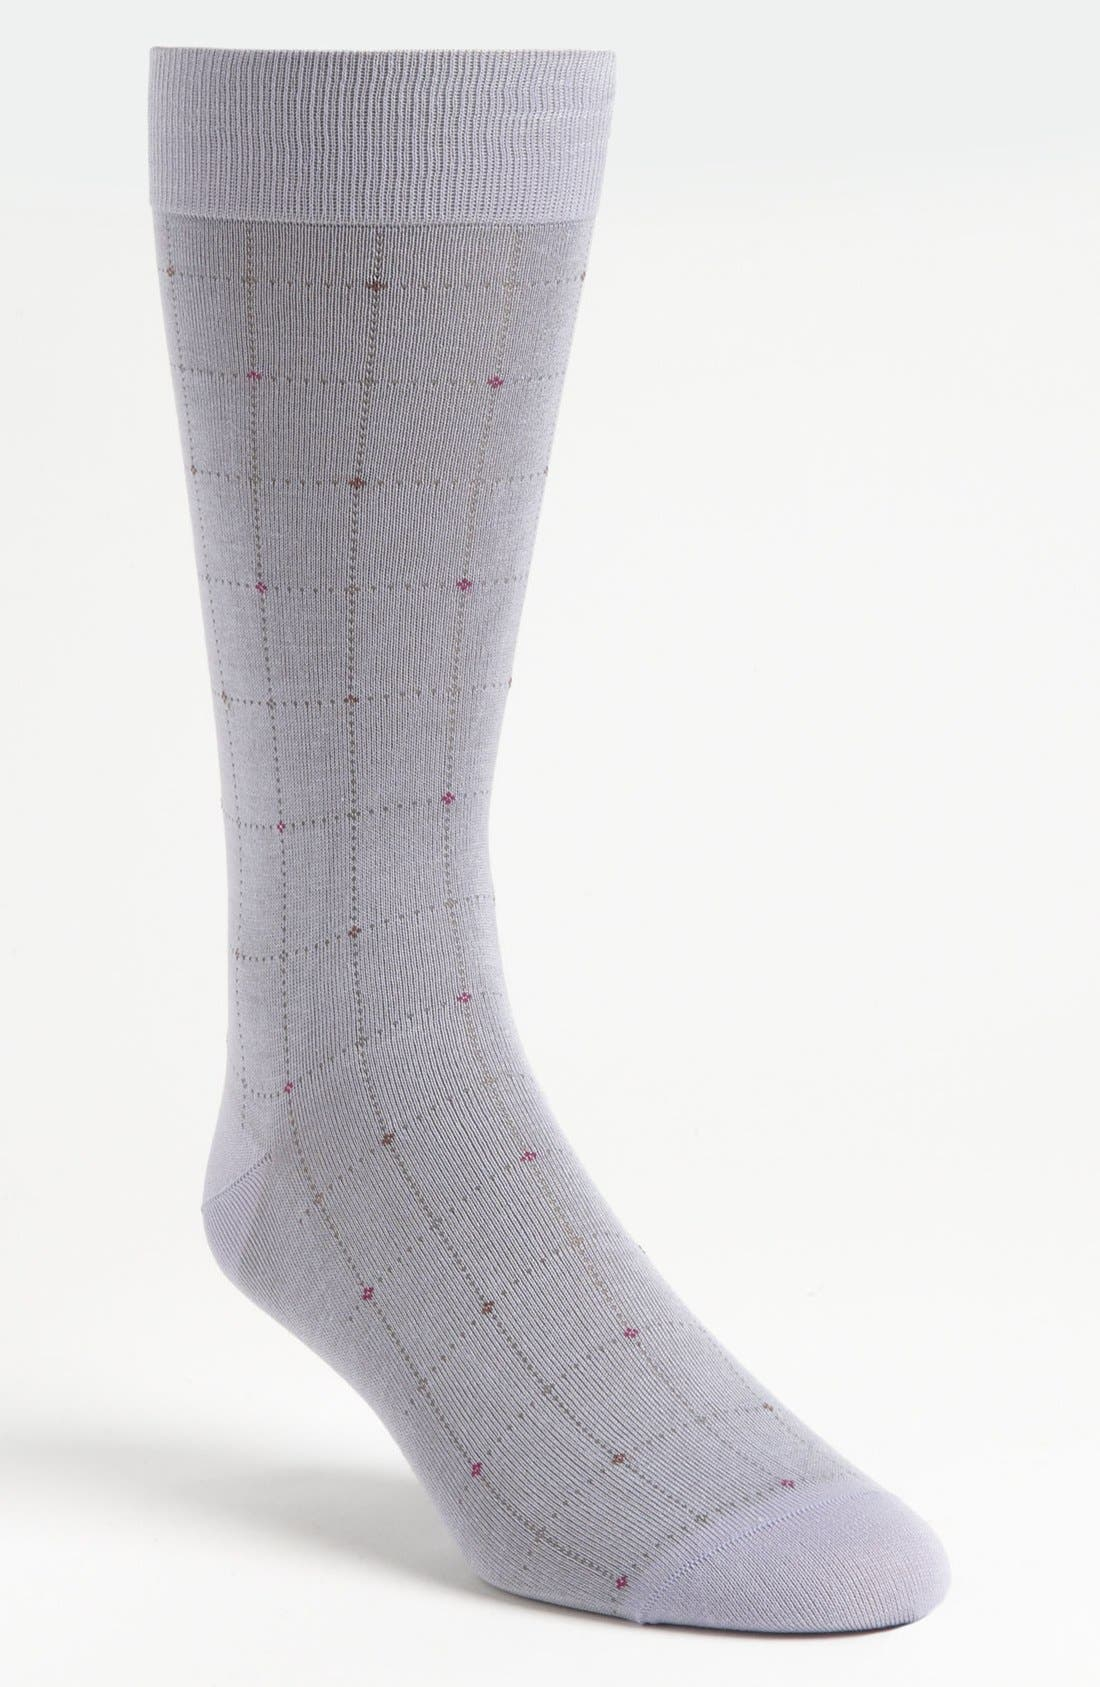 Alternate Image 1 Selected - Pantherella 'Pall Mall' Socks